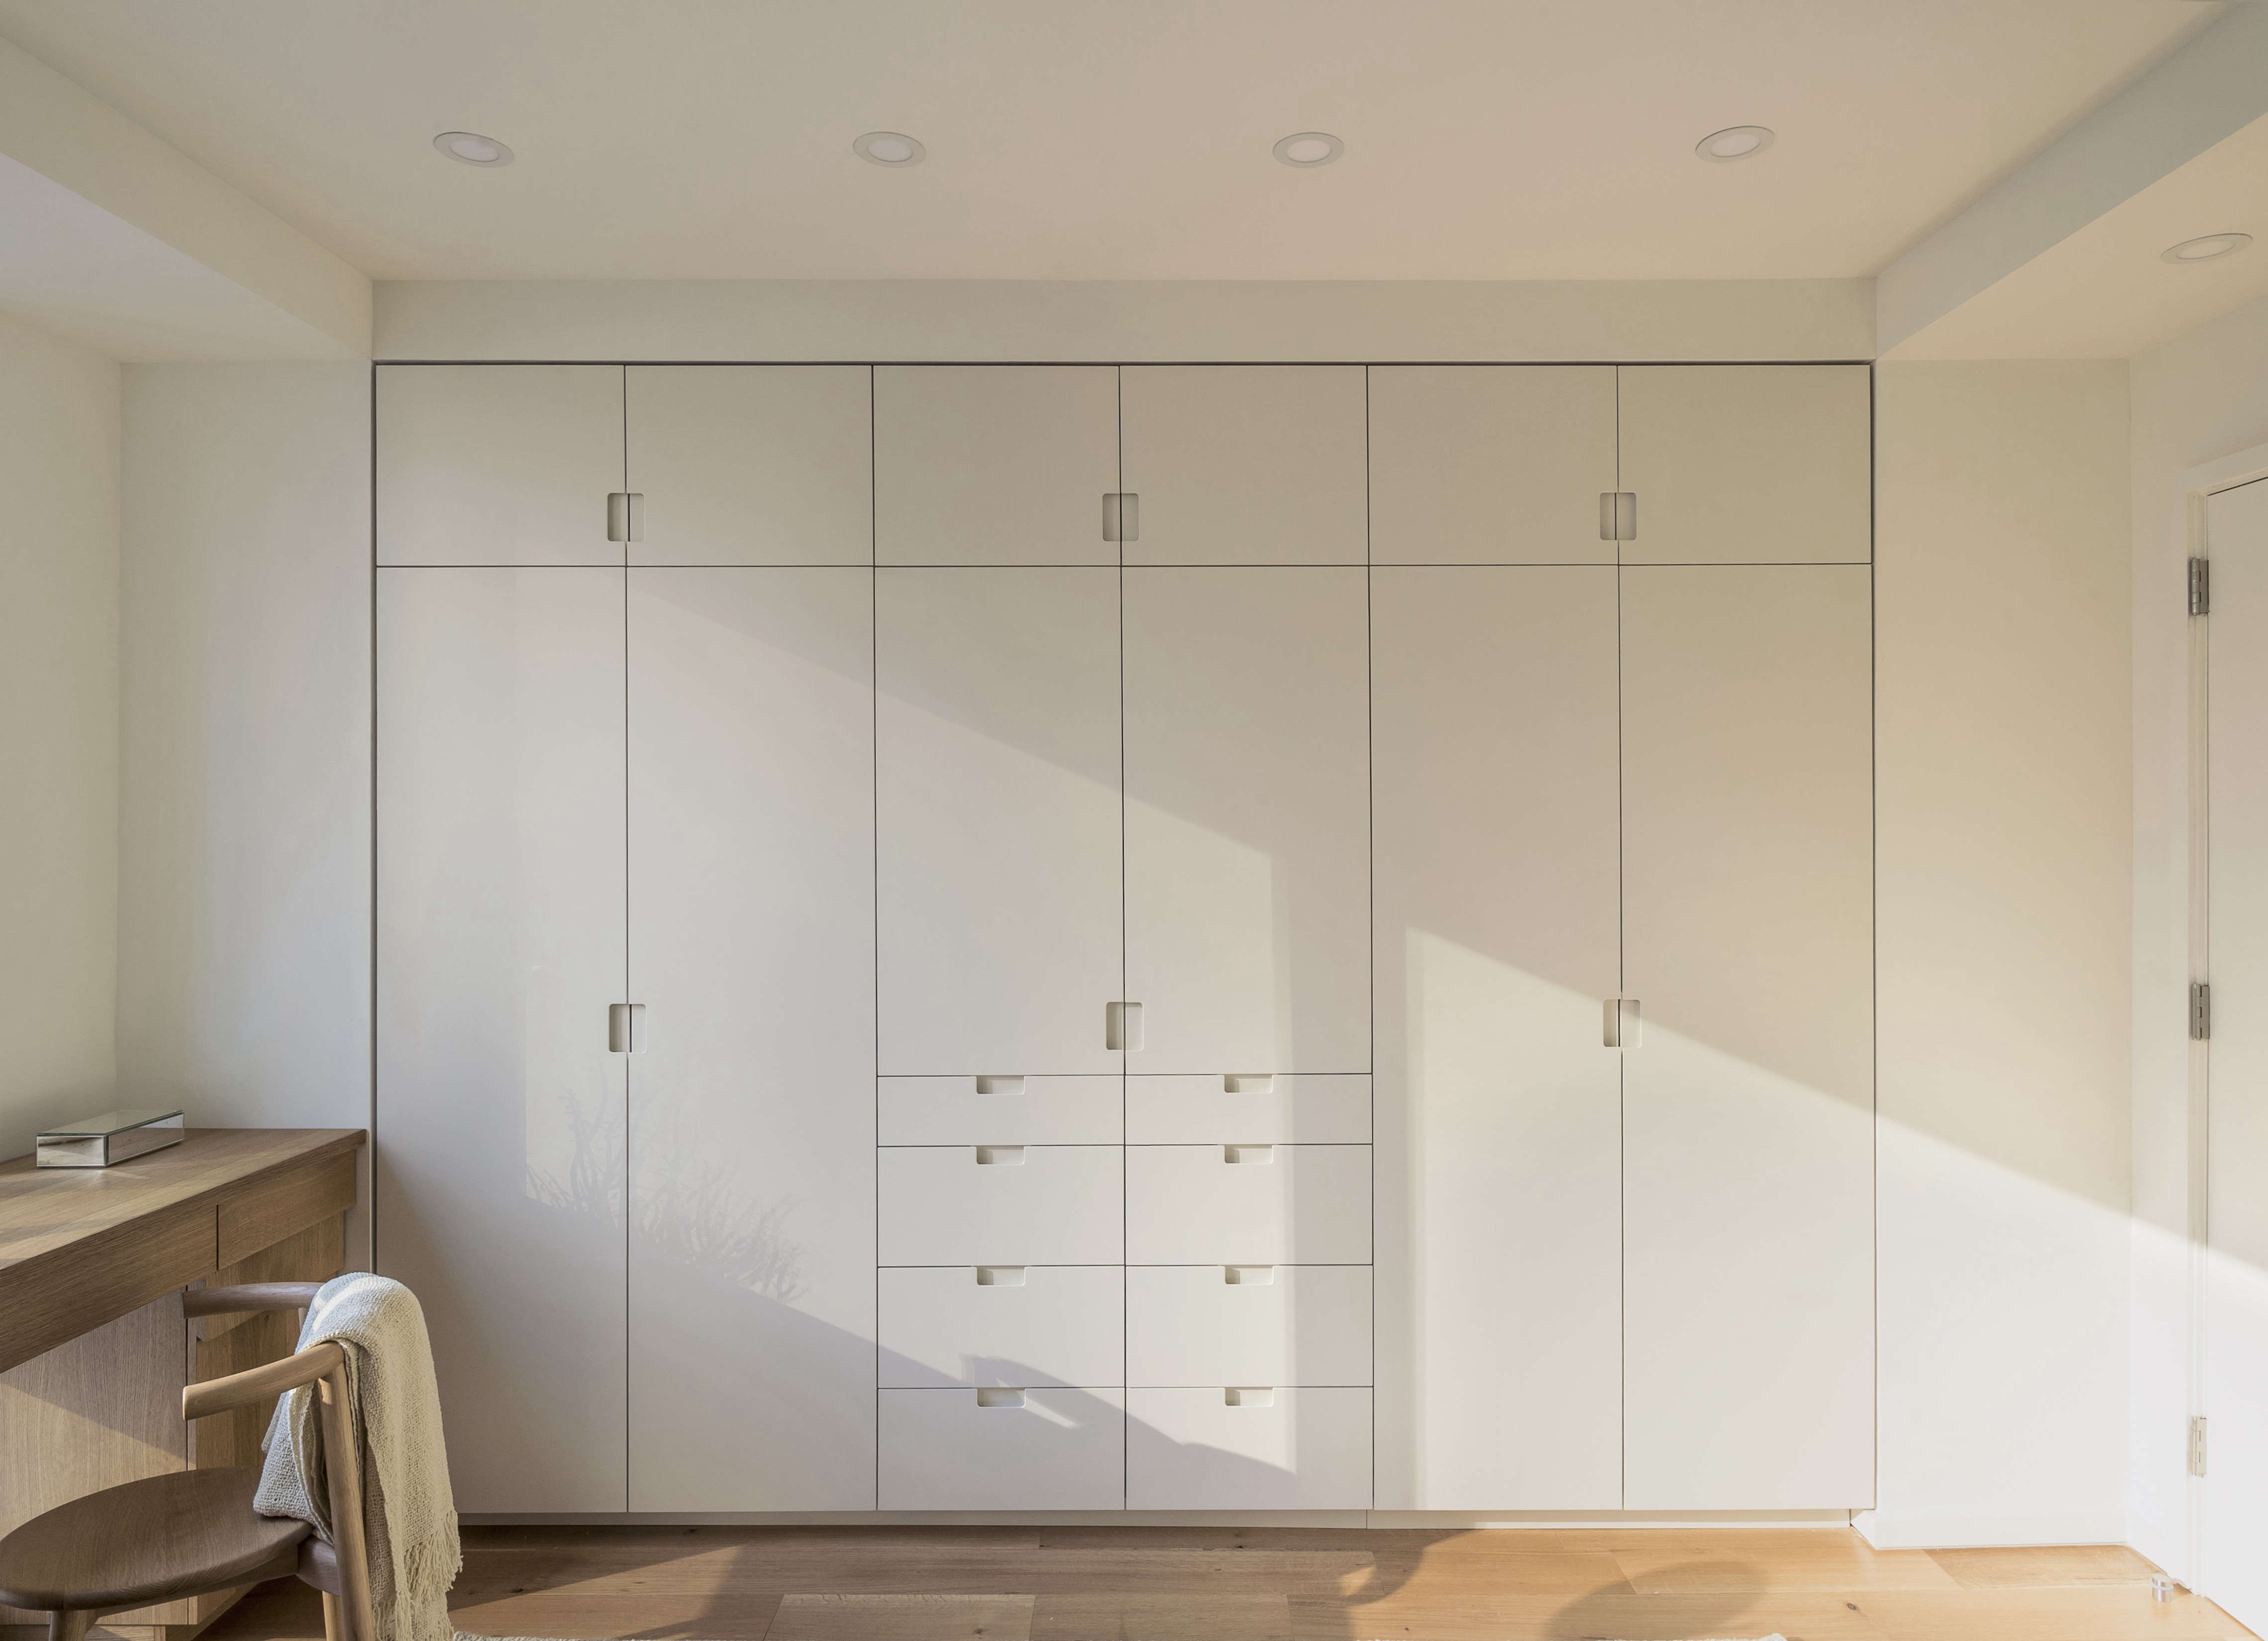 Archive Dive: Our 4 Favorite Built-in Storage Cabinets